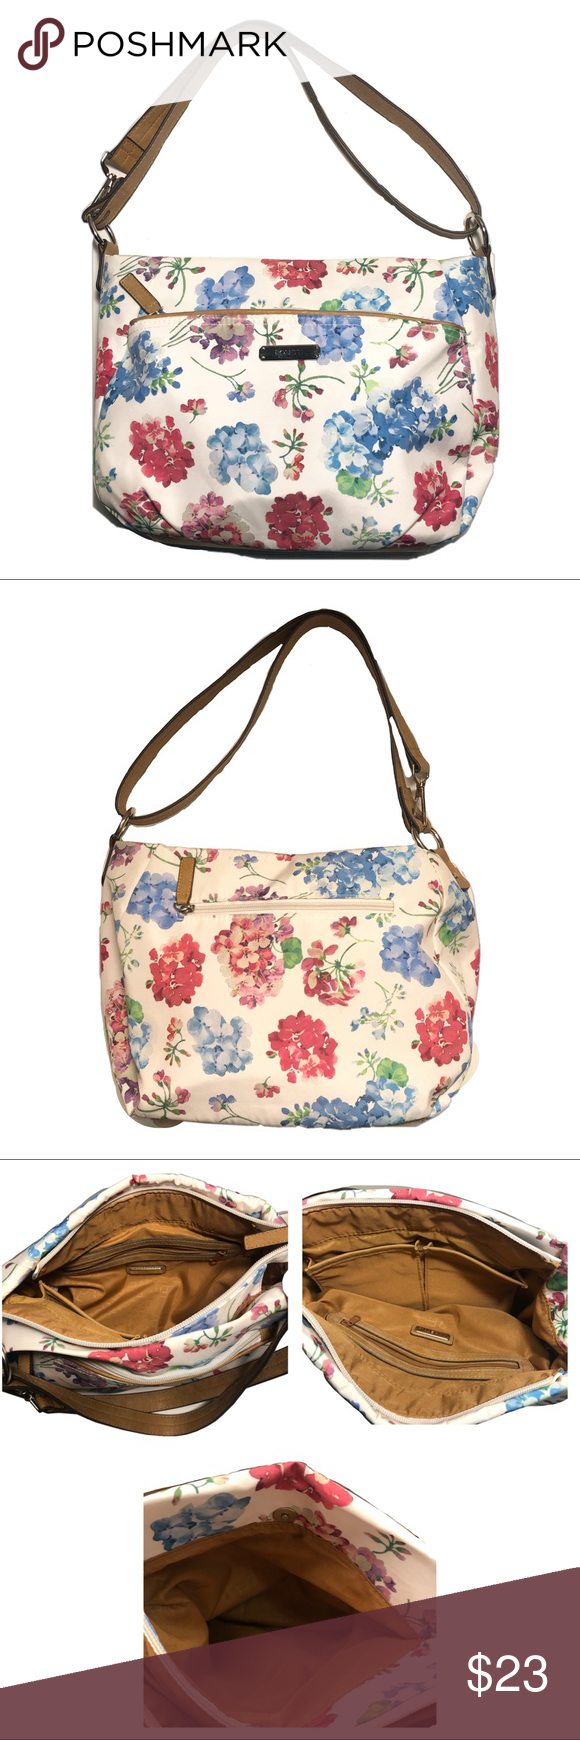 Rosetti Floral Bag Reasonable offers accepted  Rosetti Floral Bag  See pictures for measurements and material Rosetti Bags Shoulder Bags #myposhpicks